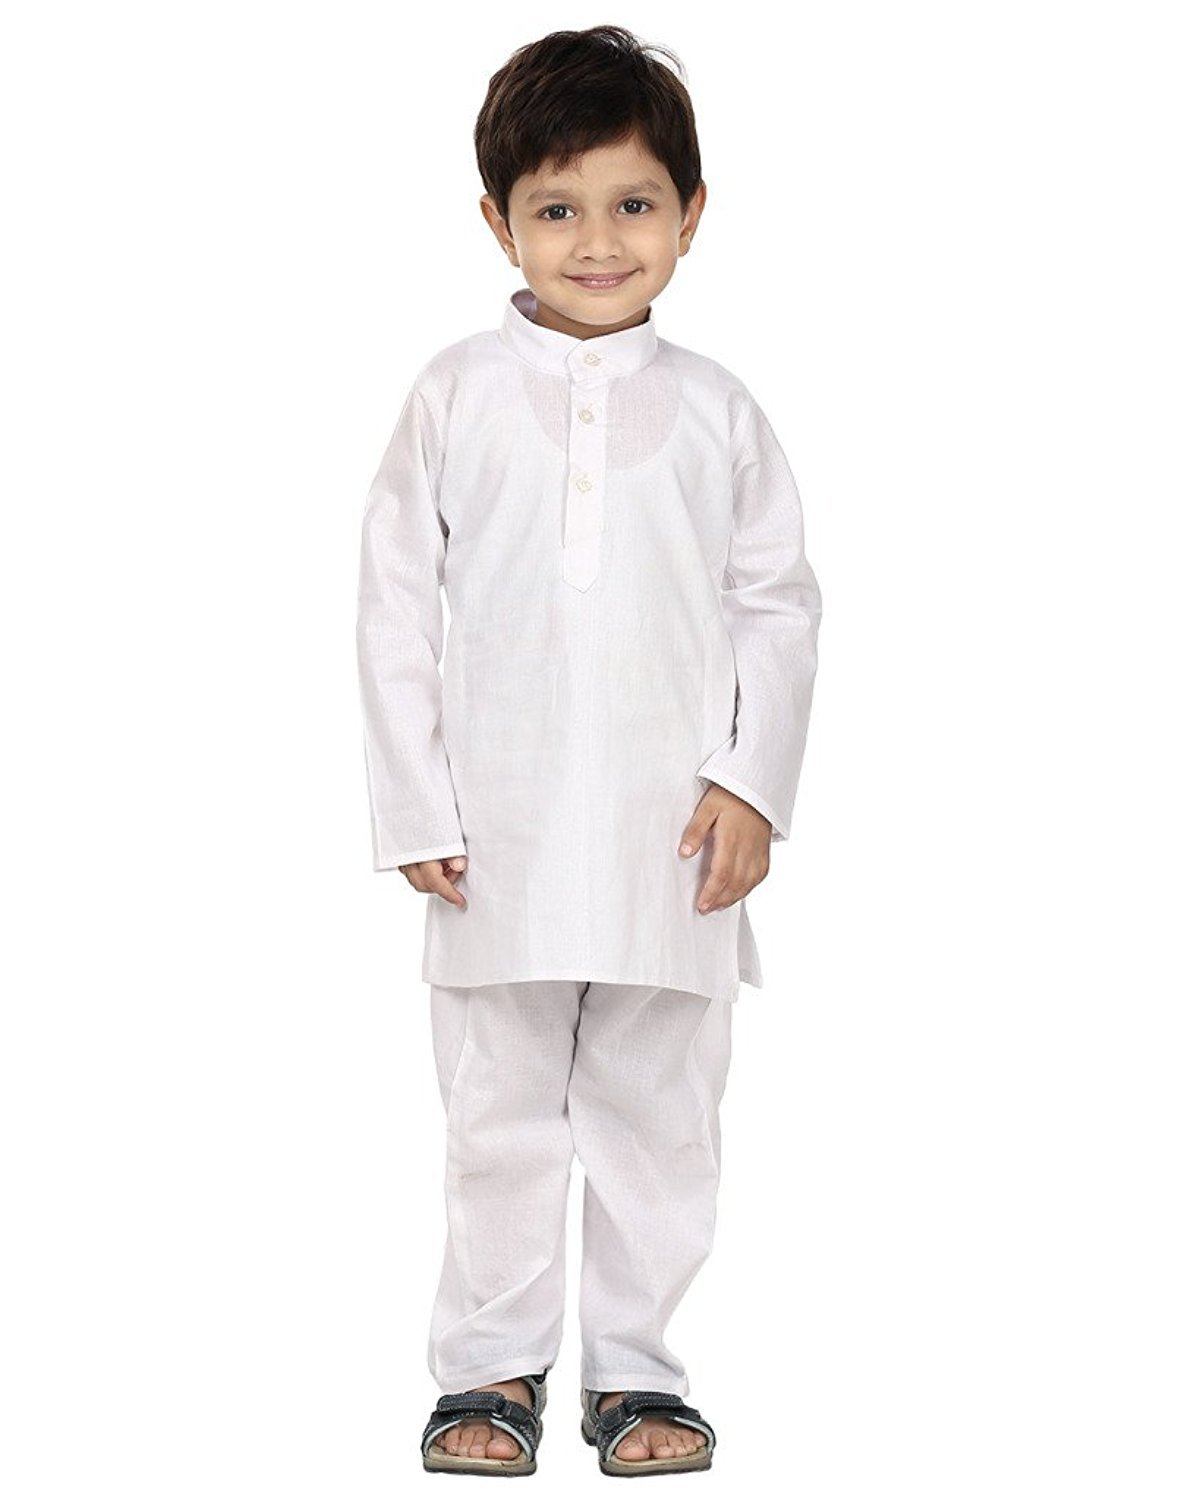 FOCIL Festival Season Special White Cotton Kurta & Pyjama Pant Set for Kids by FOCIL (Image #1)